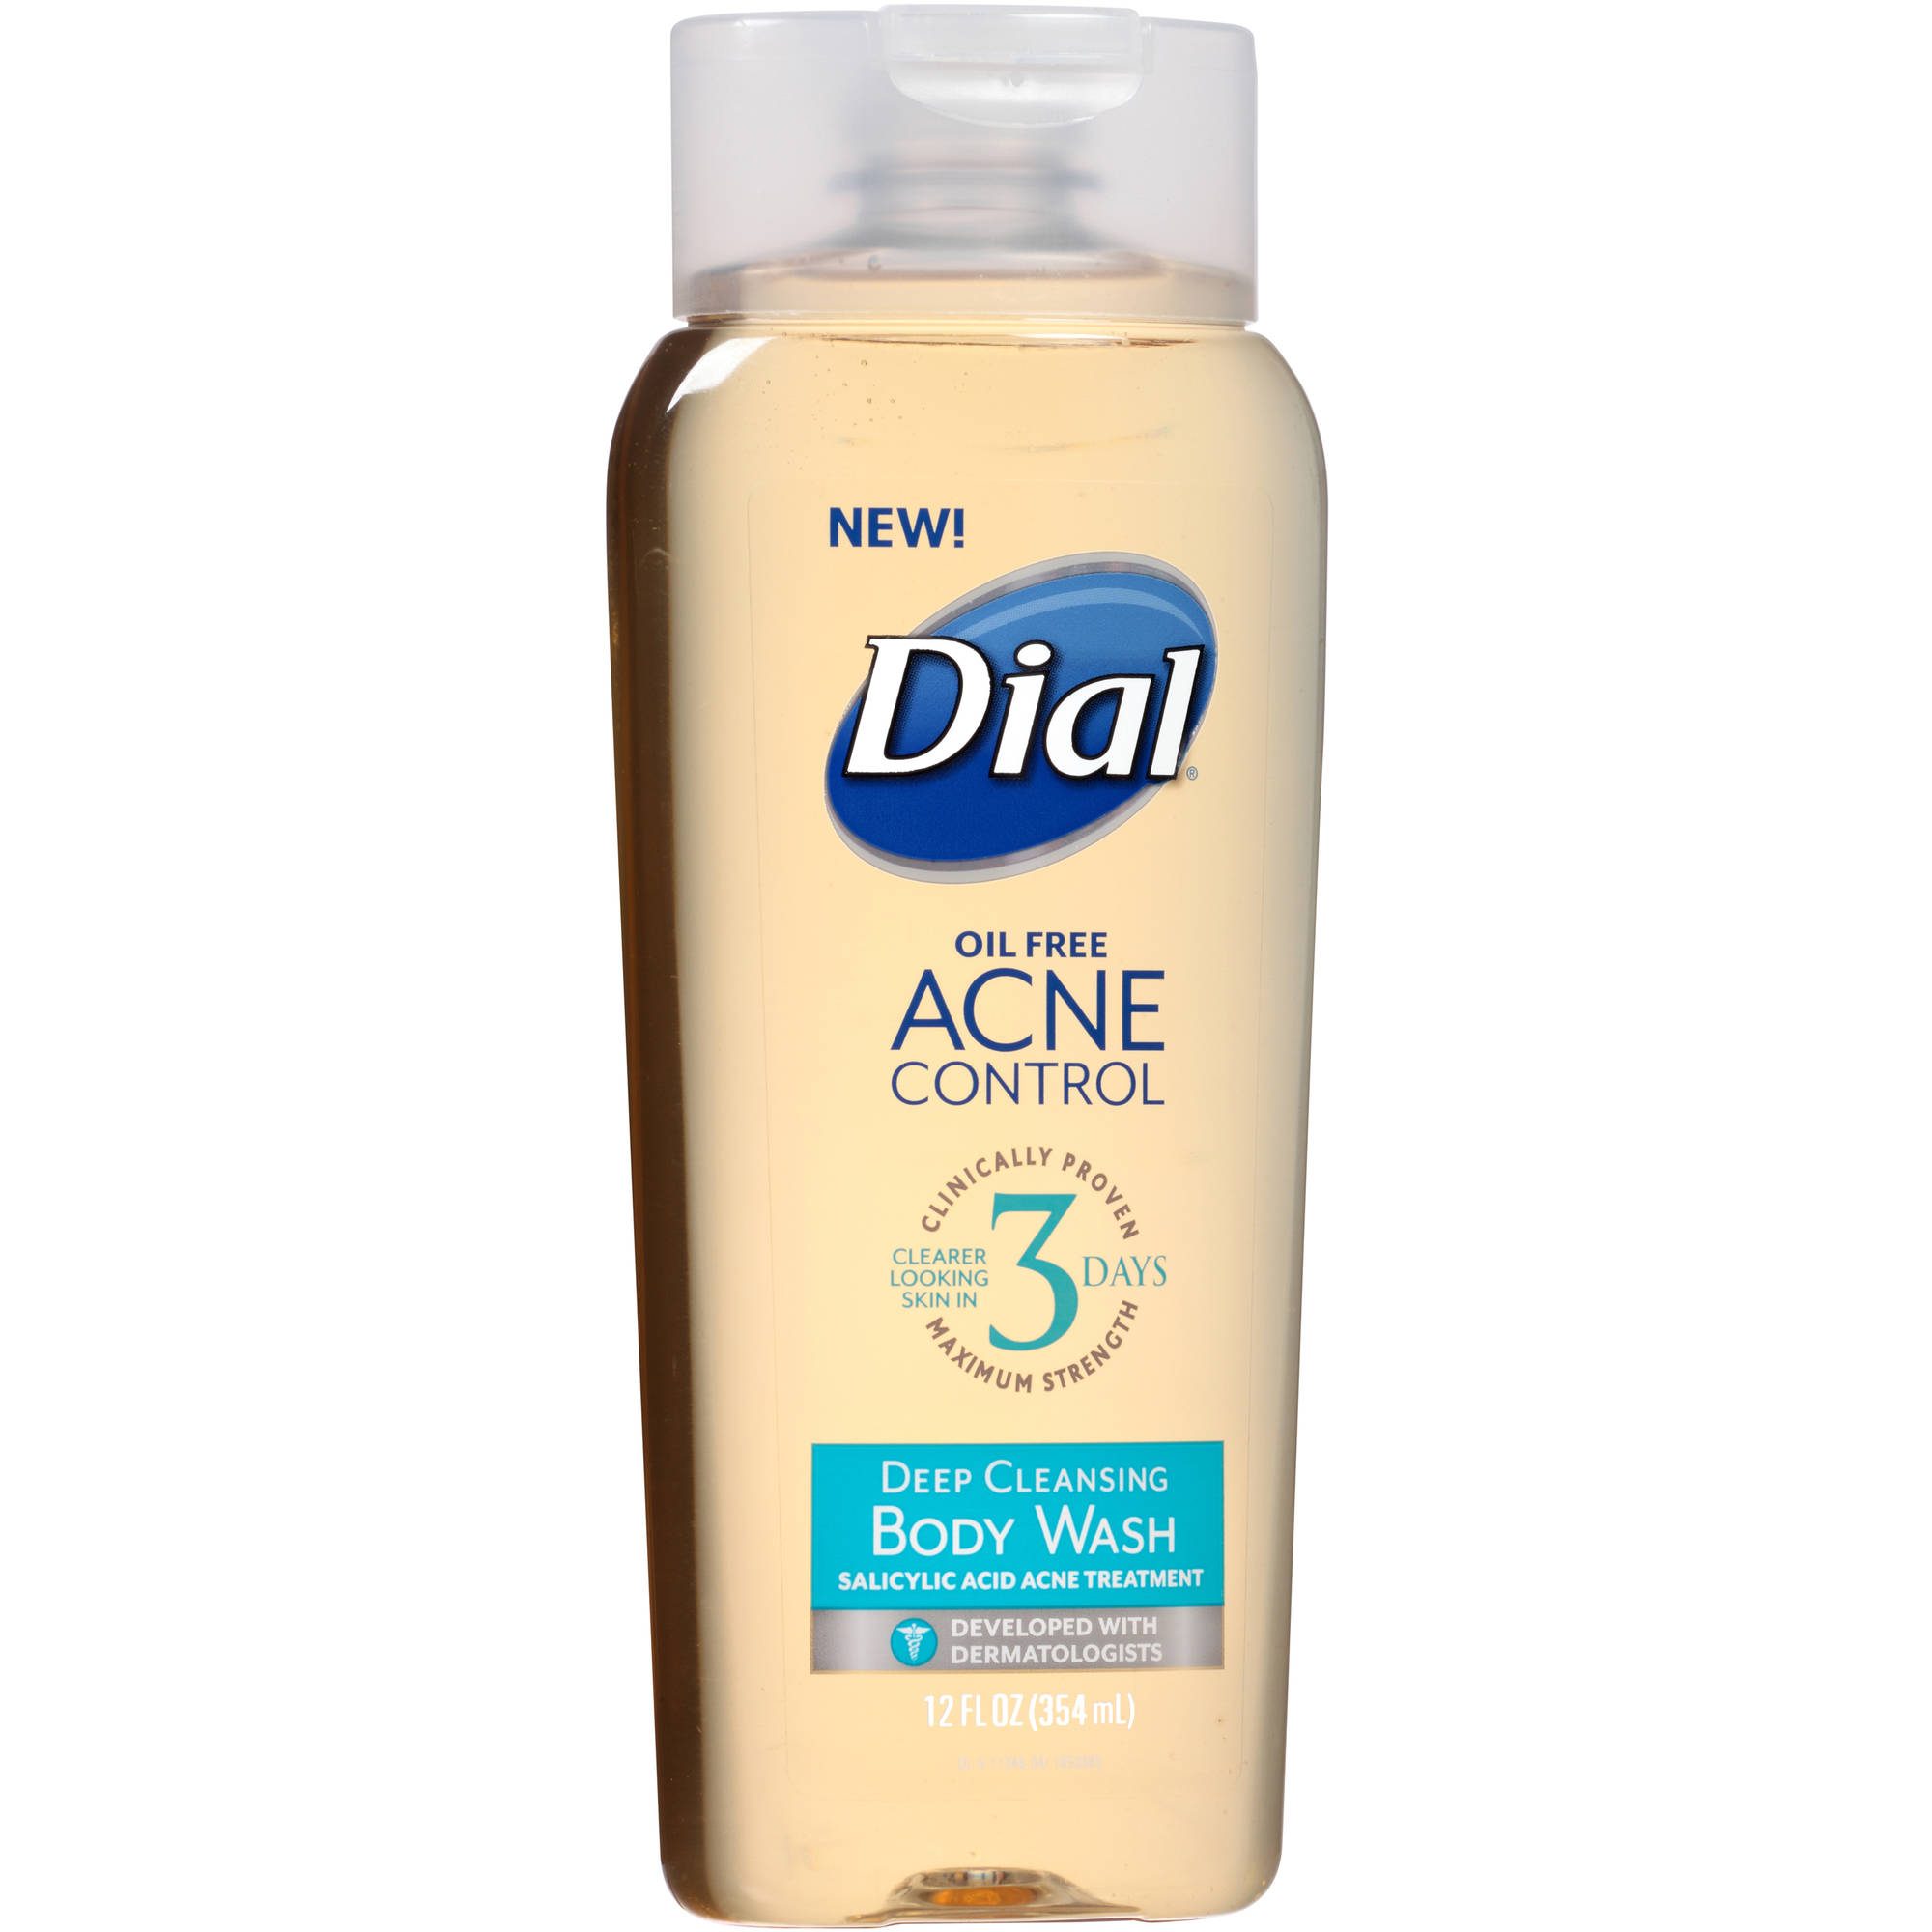 Dial Acne Control Deep Cleansing Face Wash, 12 fl oz